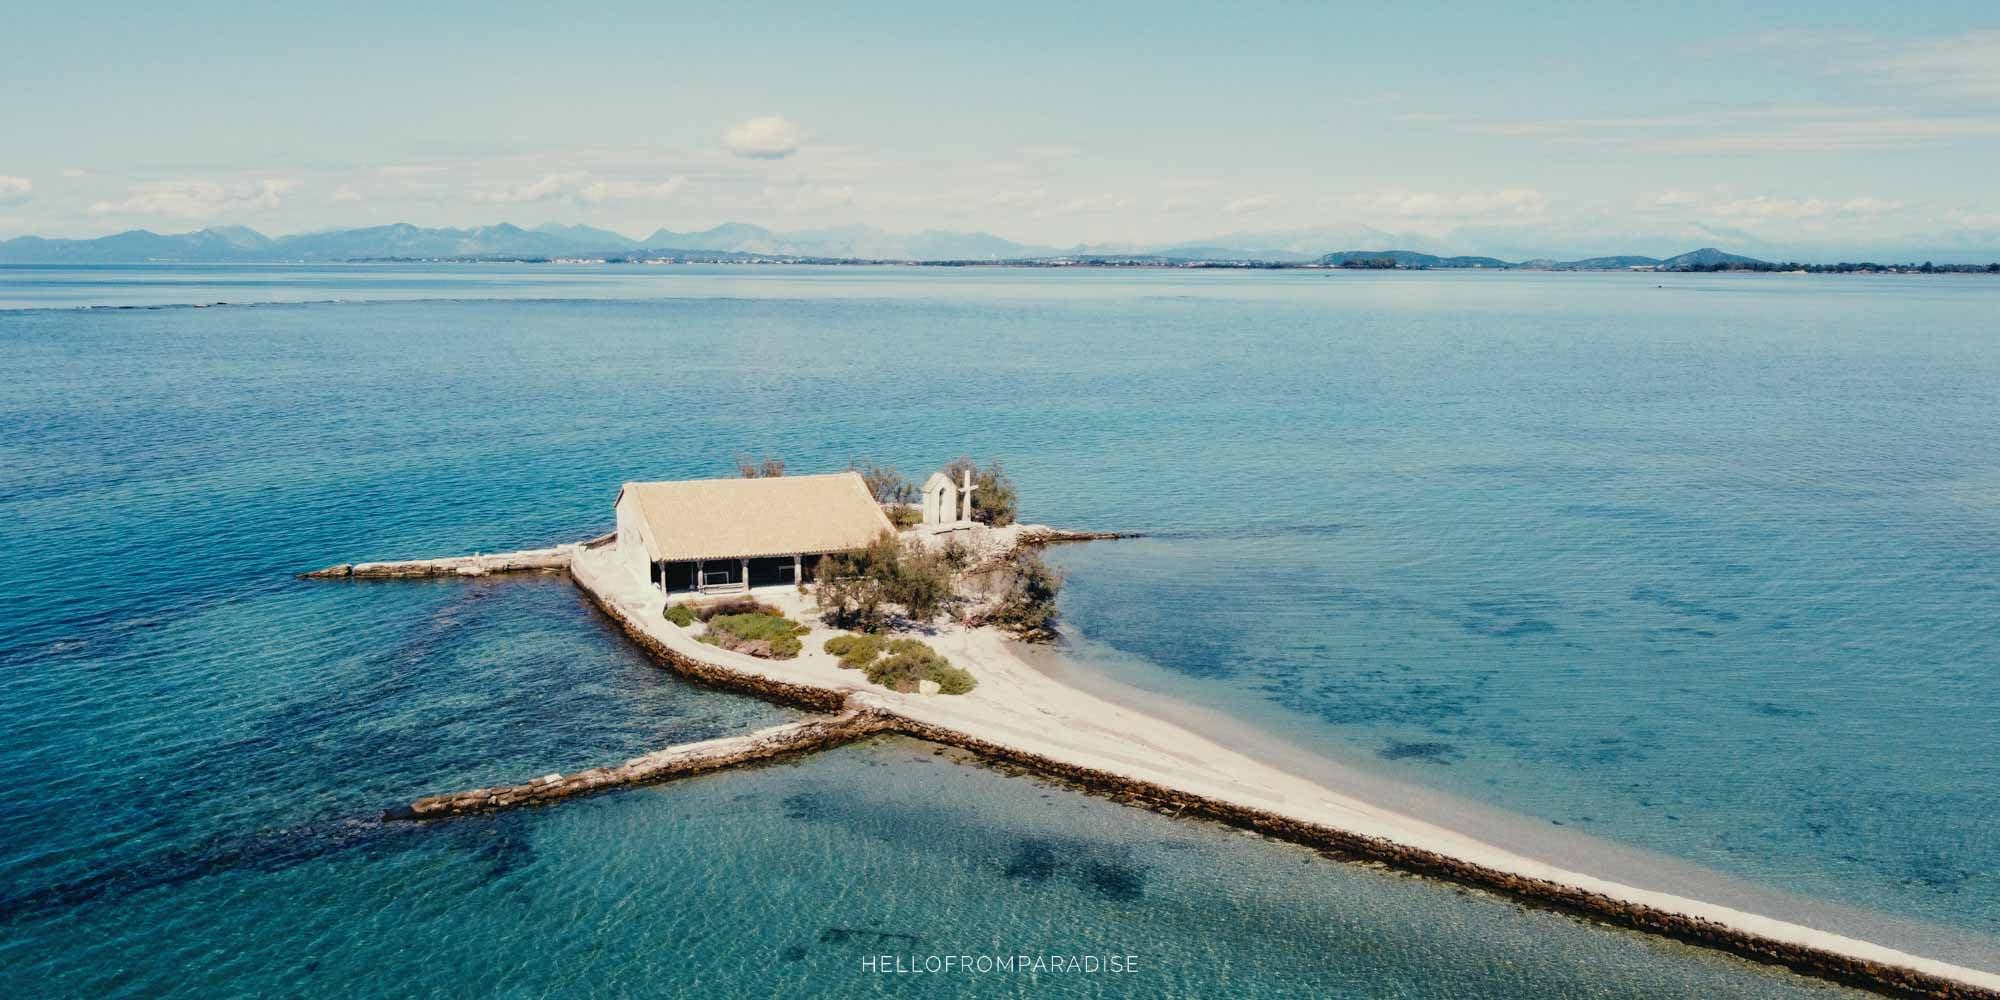 A church built on an islet surrounded by turquoise sea in Greece